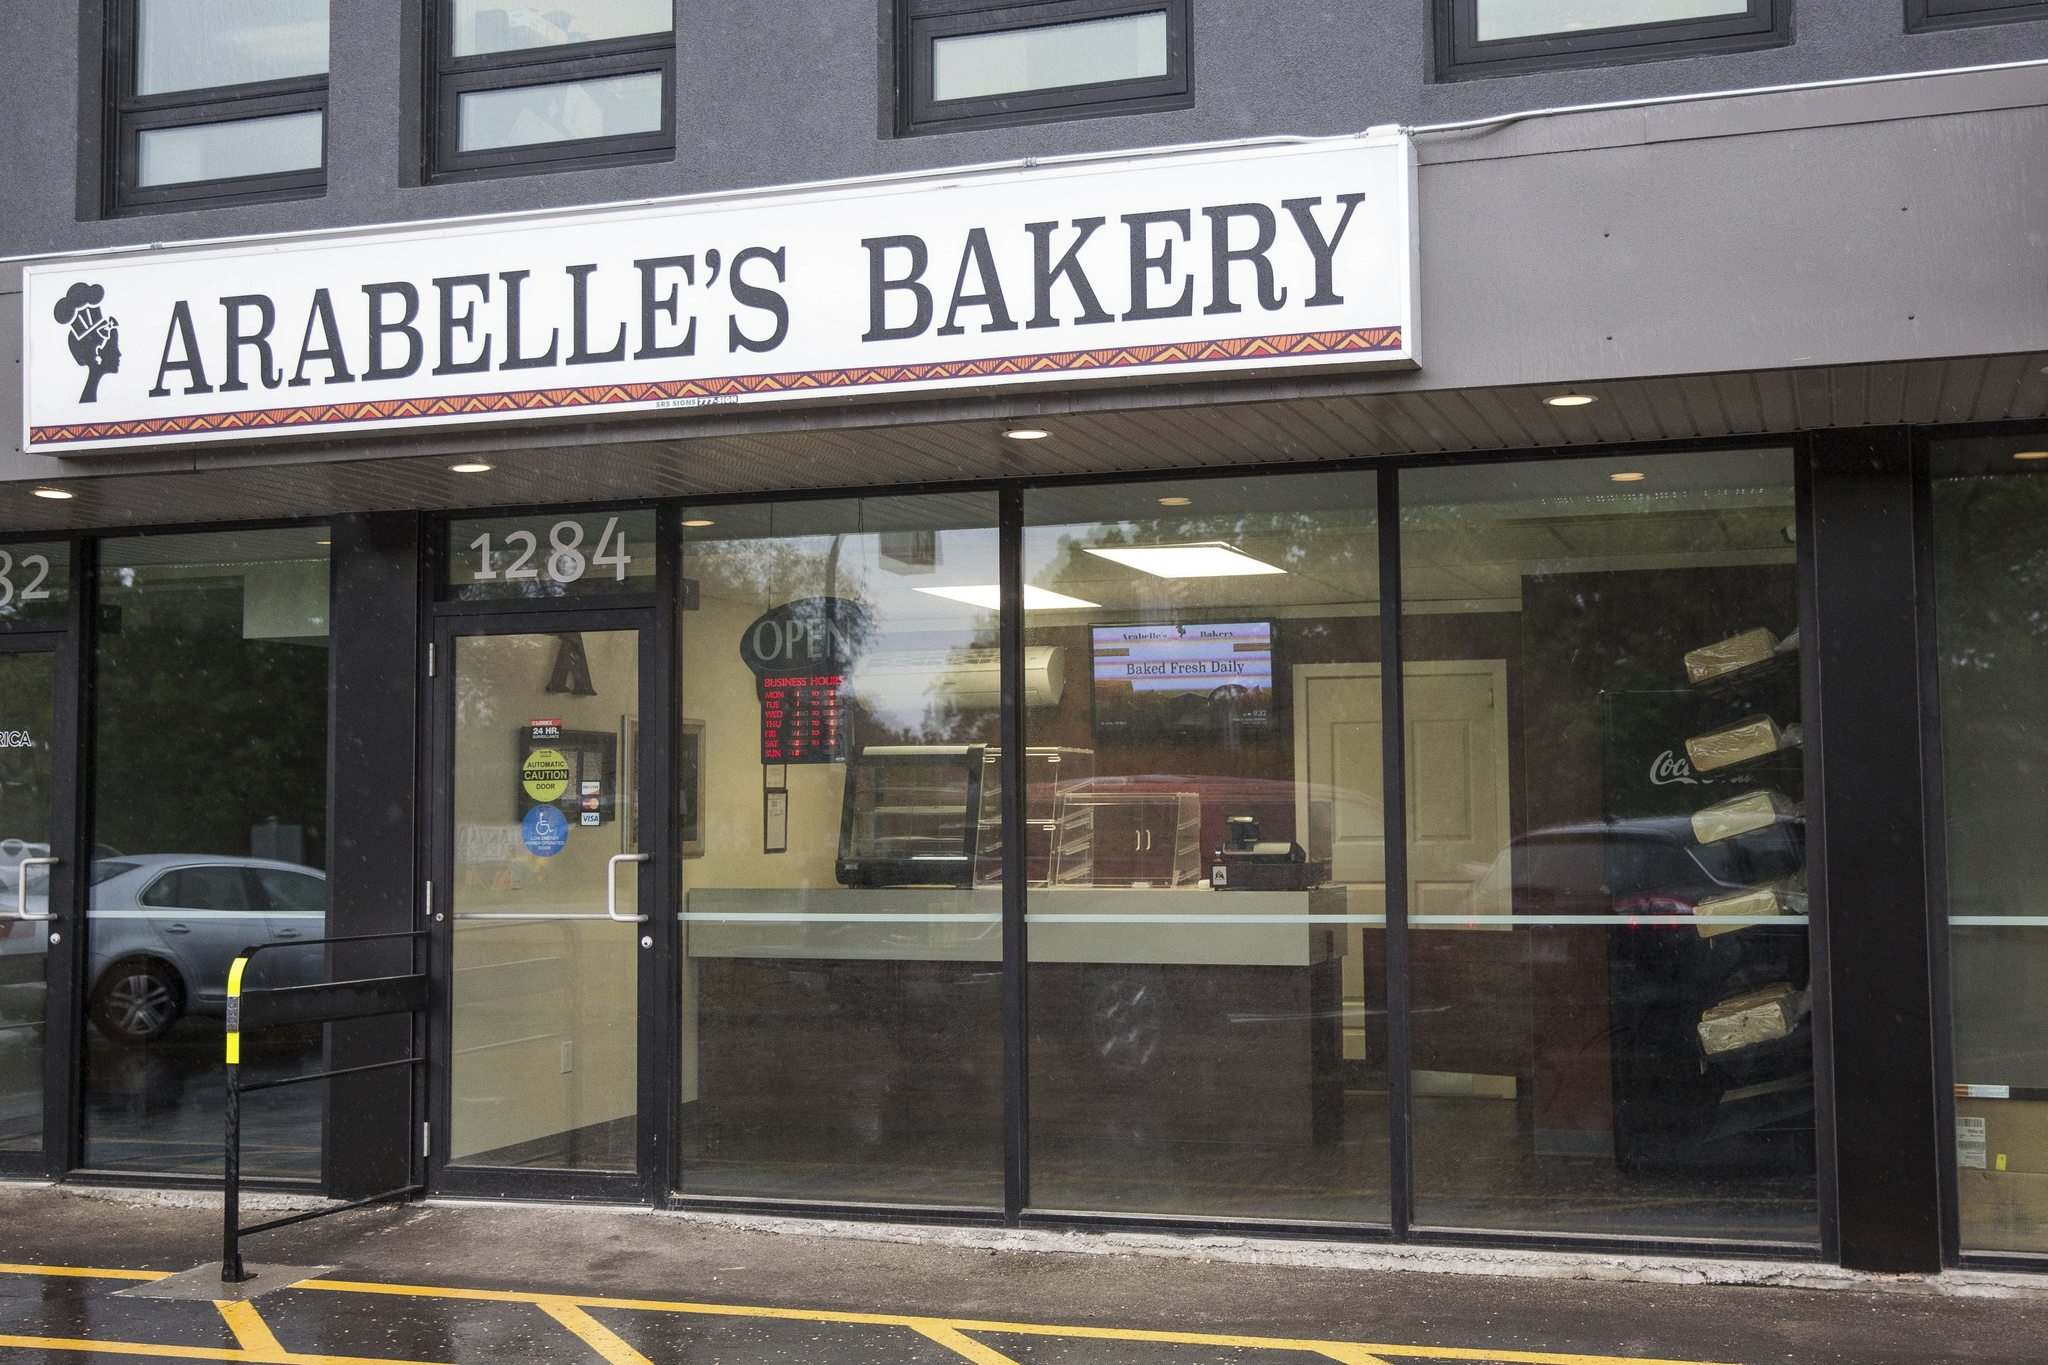 MIKE DEAL / WINNIPEG FREE PRESS</p><p>Arabelle's Bakery and Catering on Archibald Street.</p>